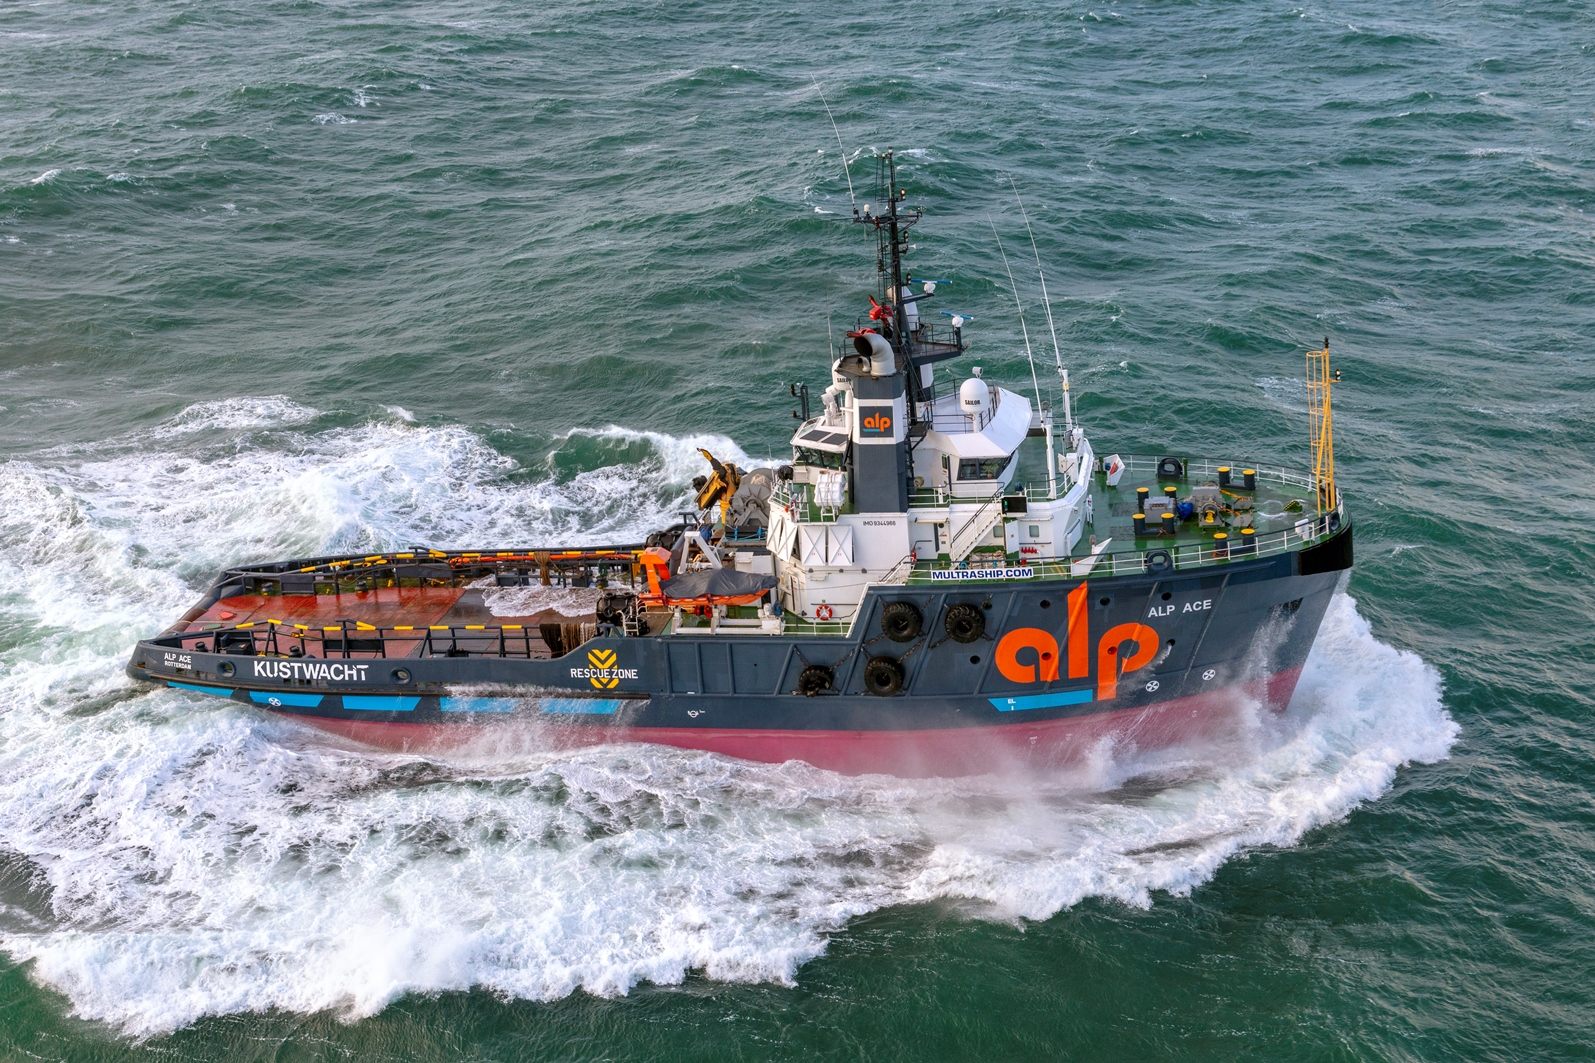 Emergency tugboat for protection of Borssele offshore wind farm